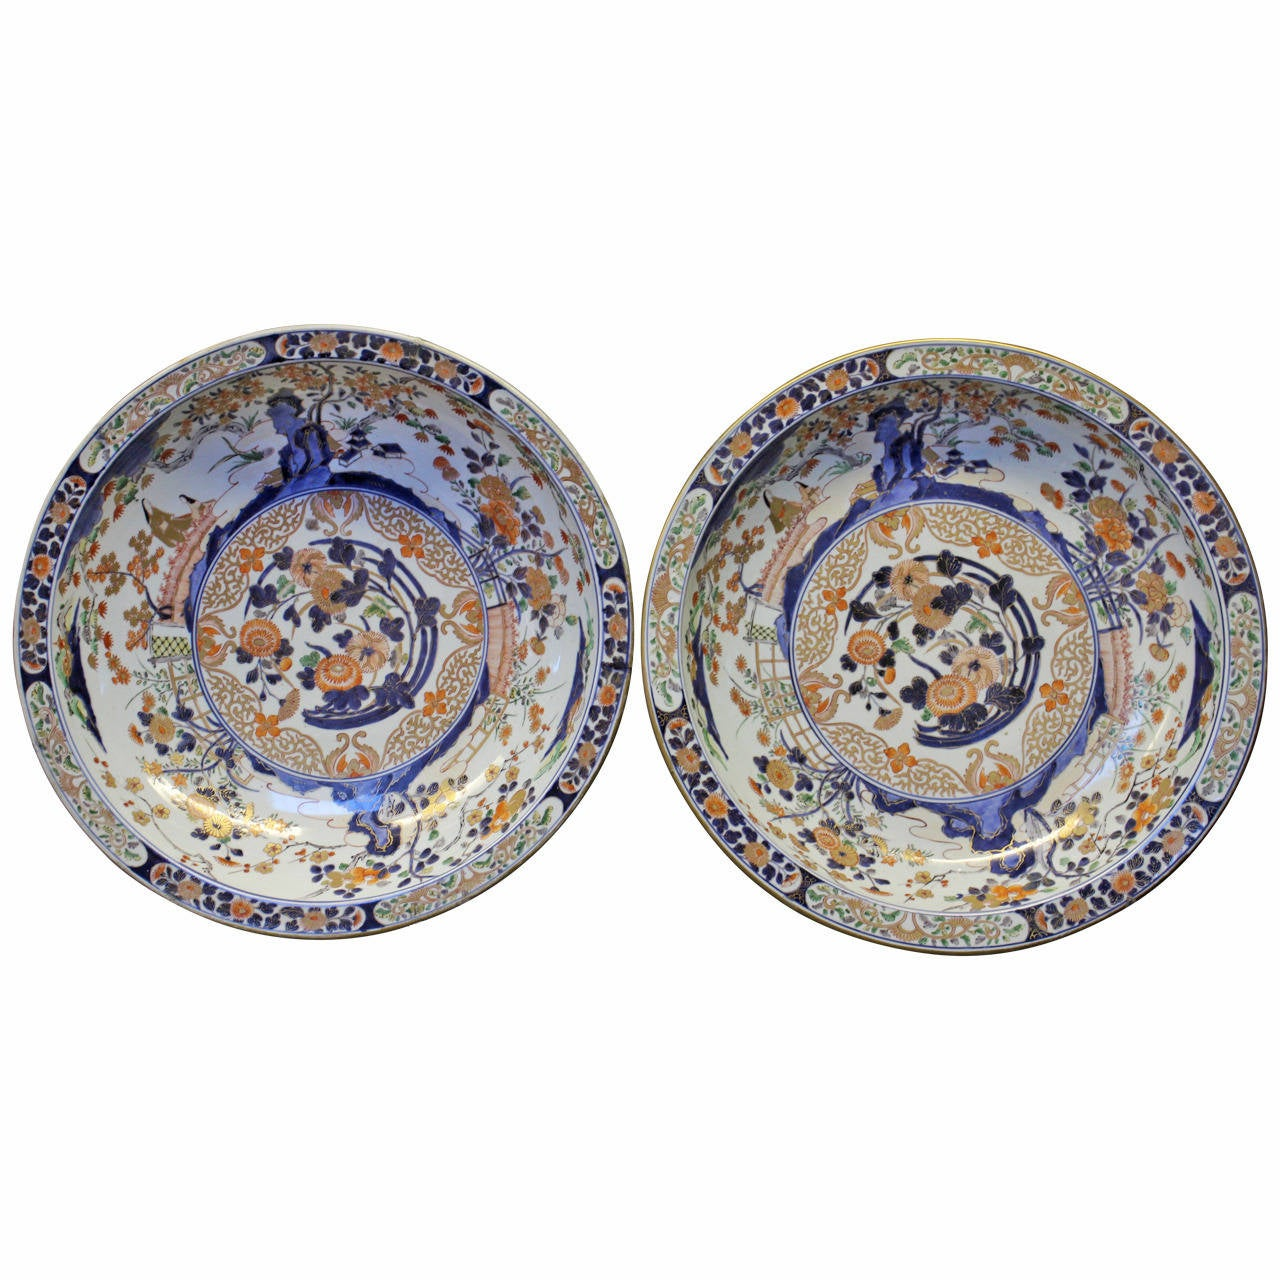 A Pair Of Very Large 17th Century Japanese Imari Plates At